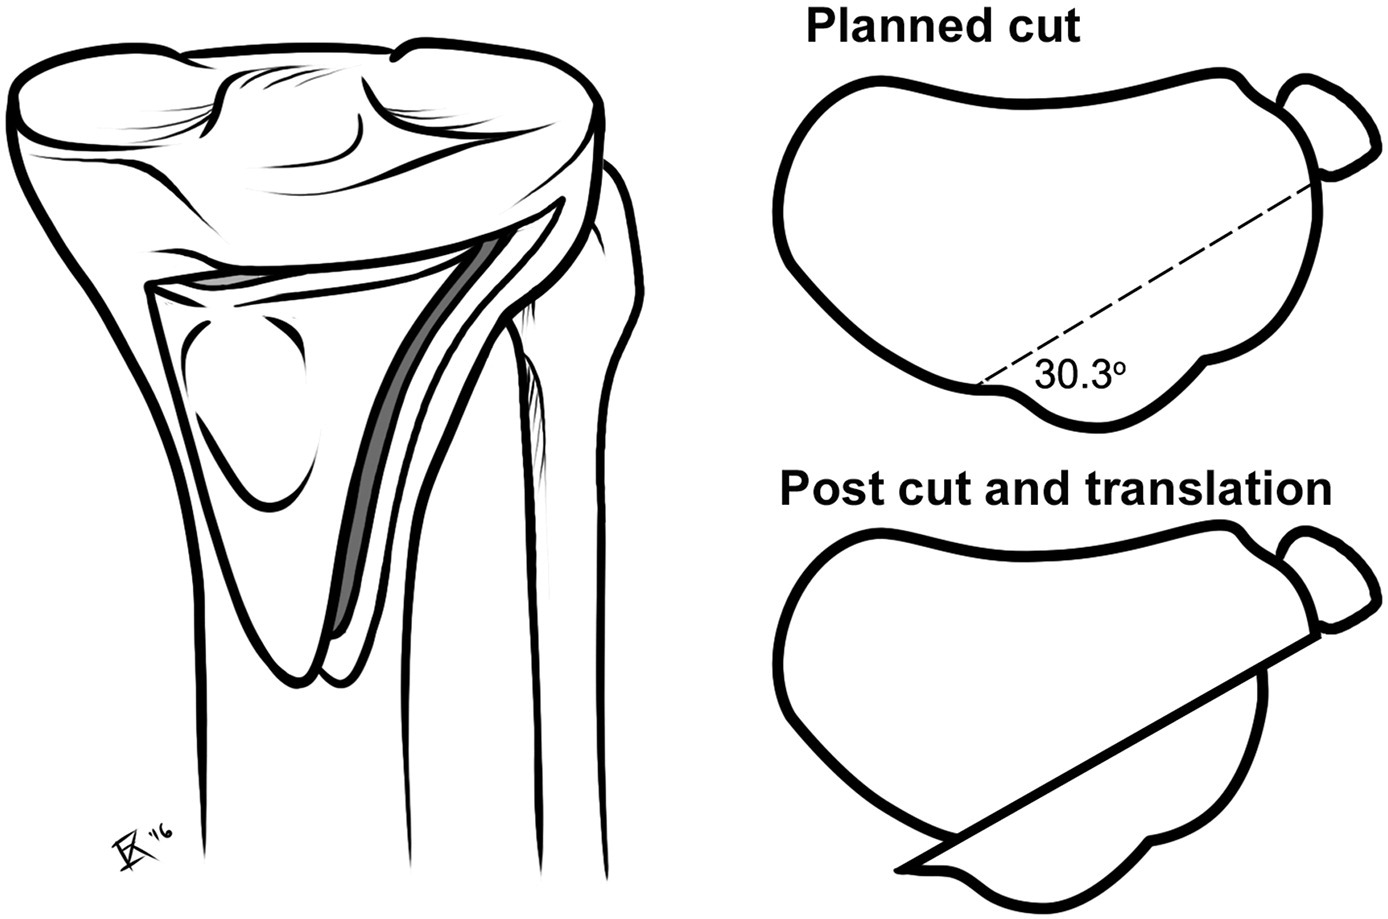 Tibial tubercle osteotomy: A biomechanical comparison of